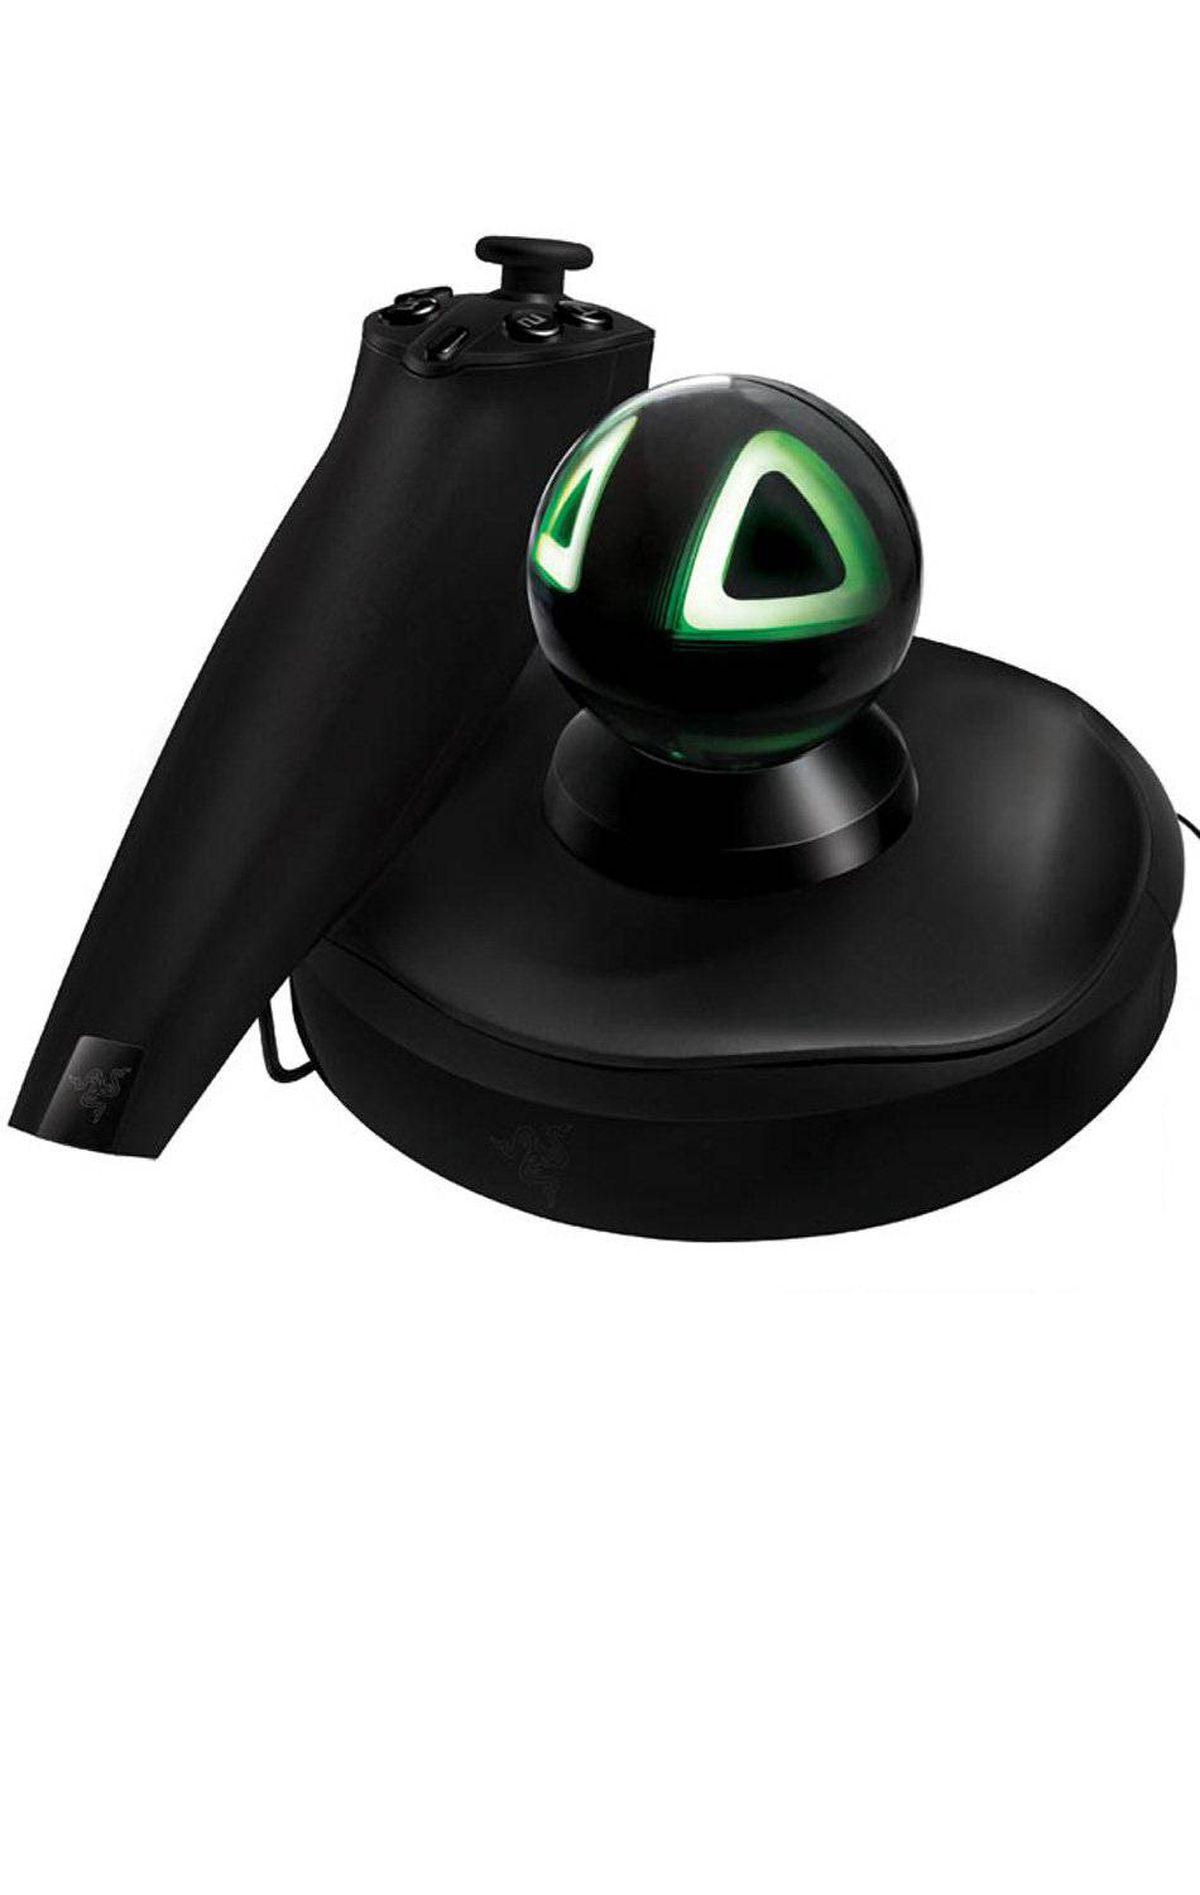 Razer Hydra PC Gaming Motion Sensing Controller Made for PC gamers who feel left out of the motion control wave, the Hydra uses magnets to detect movement by the millimetre for maximum accuracy. It's compatible with 125 games out of the box and comes bundled with a copy of Portal 2 that includes six bonus levels specifically designed for motion control. ($139.99; www.razerzone.com)